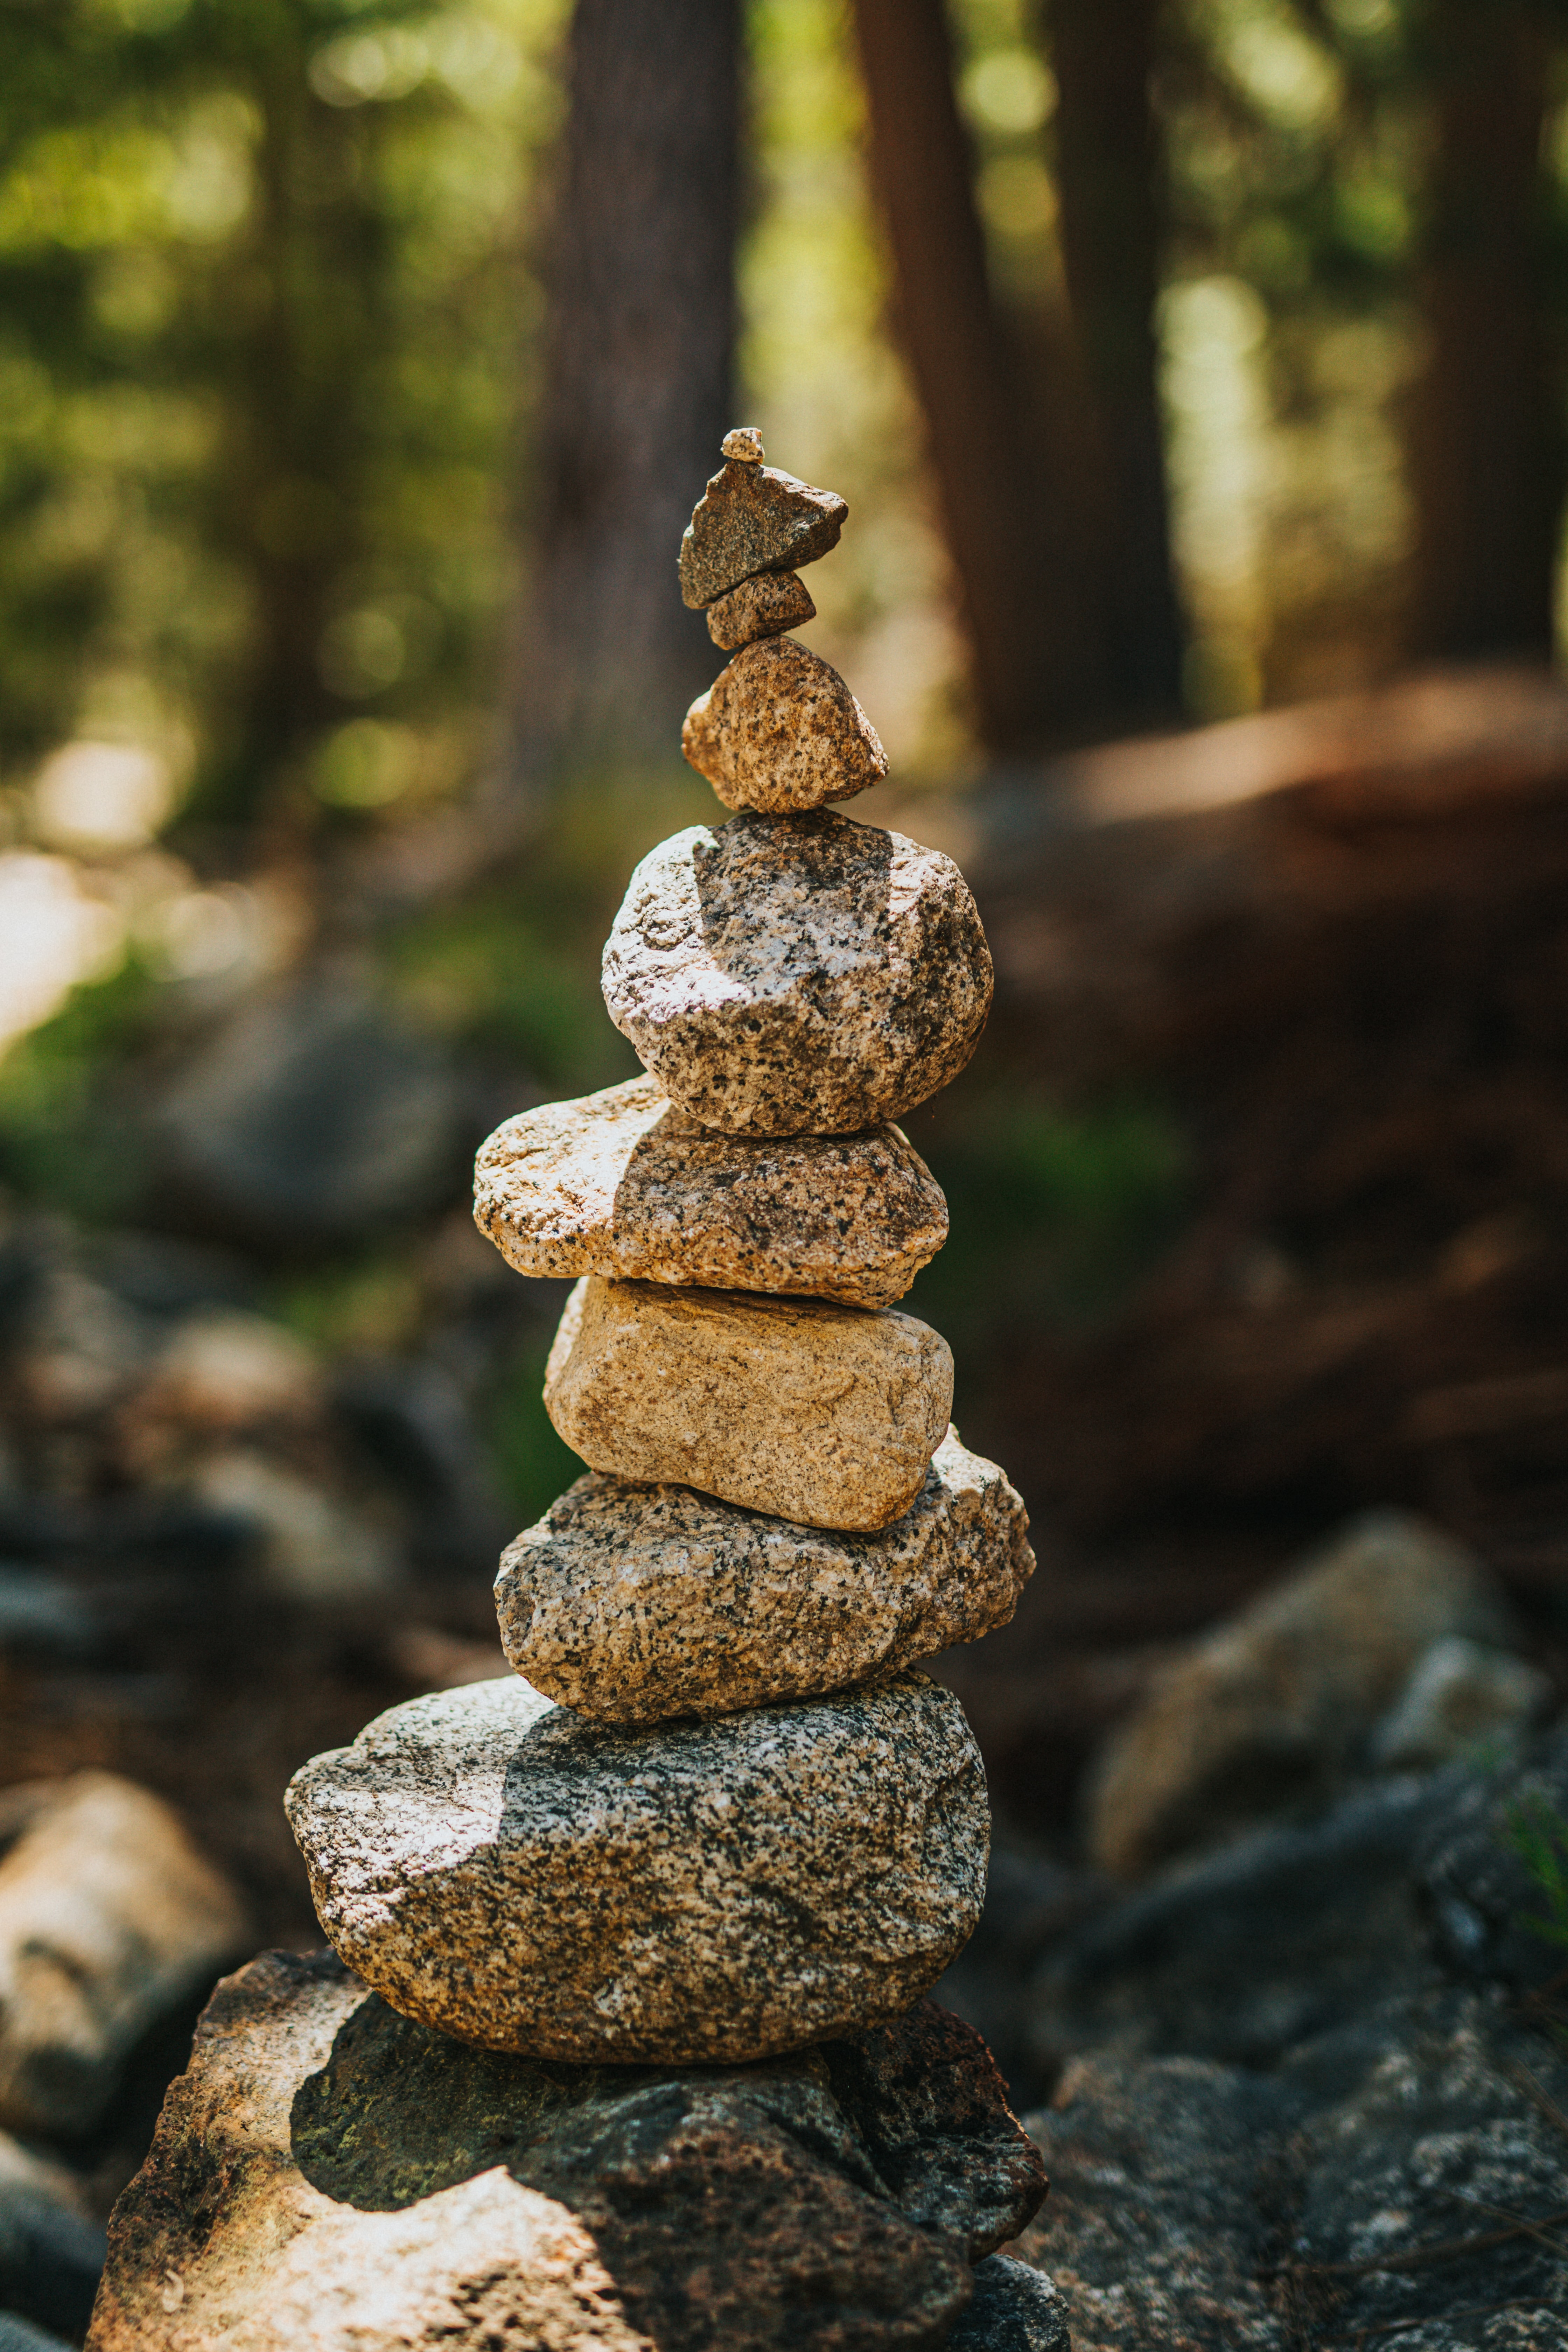 111661 download wallpaper Stones, Balance, Miscellanea, Miscellaneous, Granite, Minerals screensavers and pictures for free